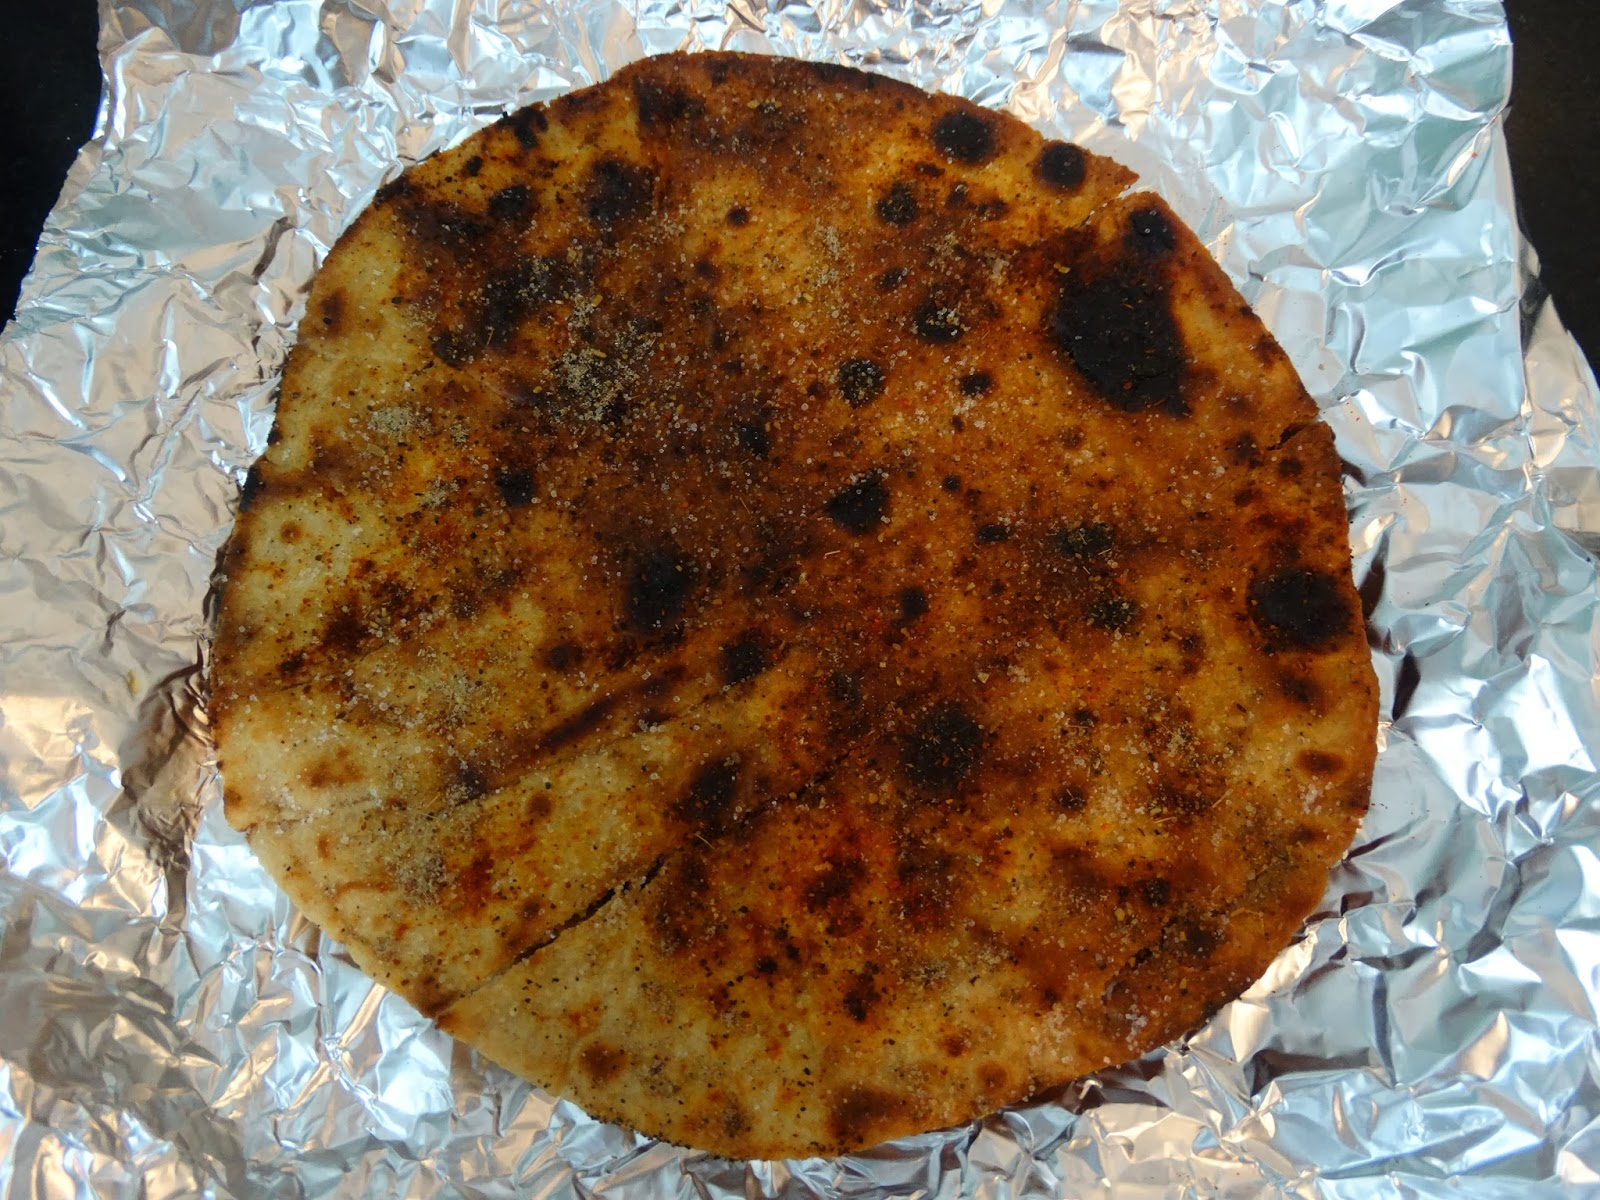 rainingfood.com masala papad using roti